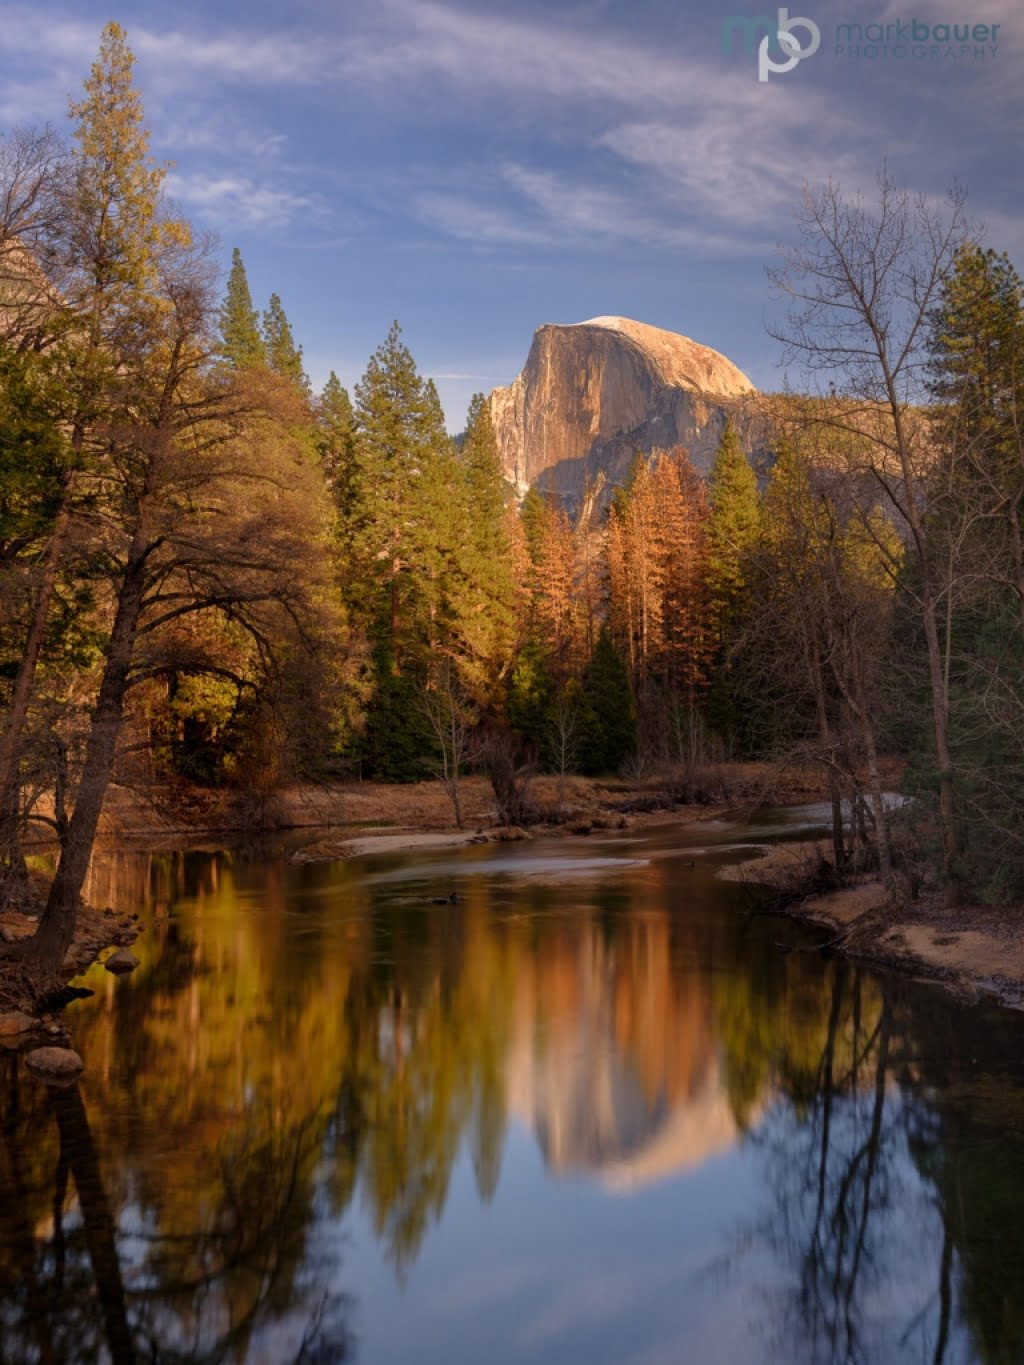 Mark Bauer Photography | Winter Light, Half Dome, Yosemite